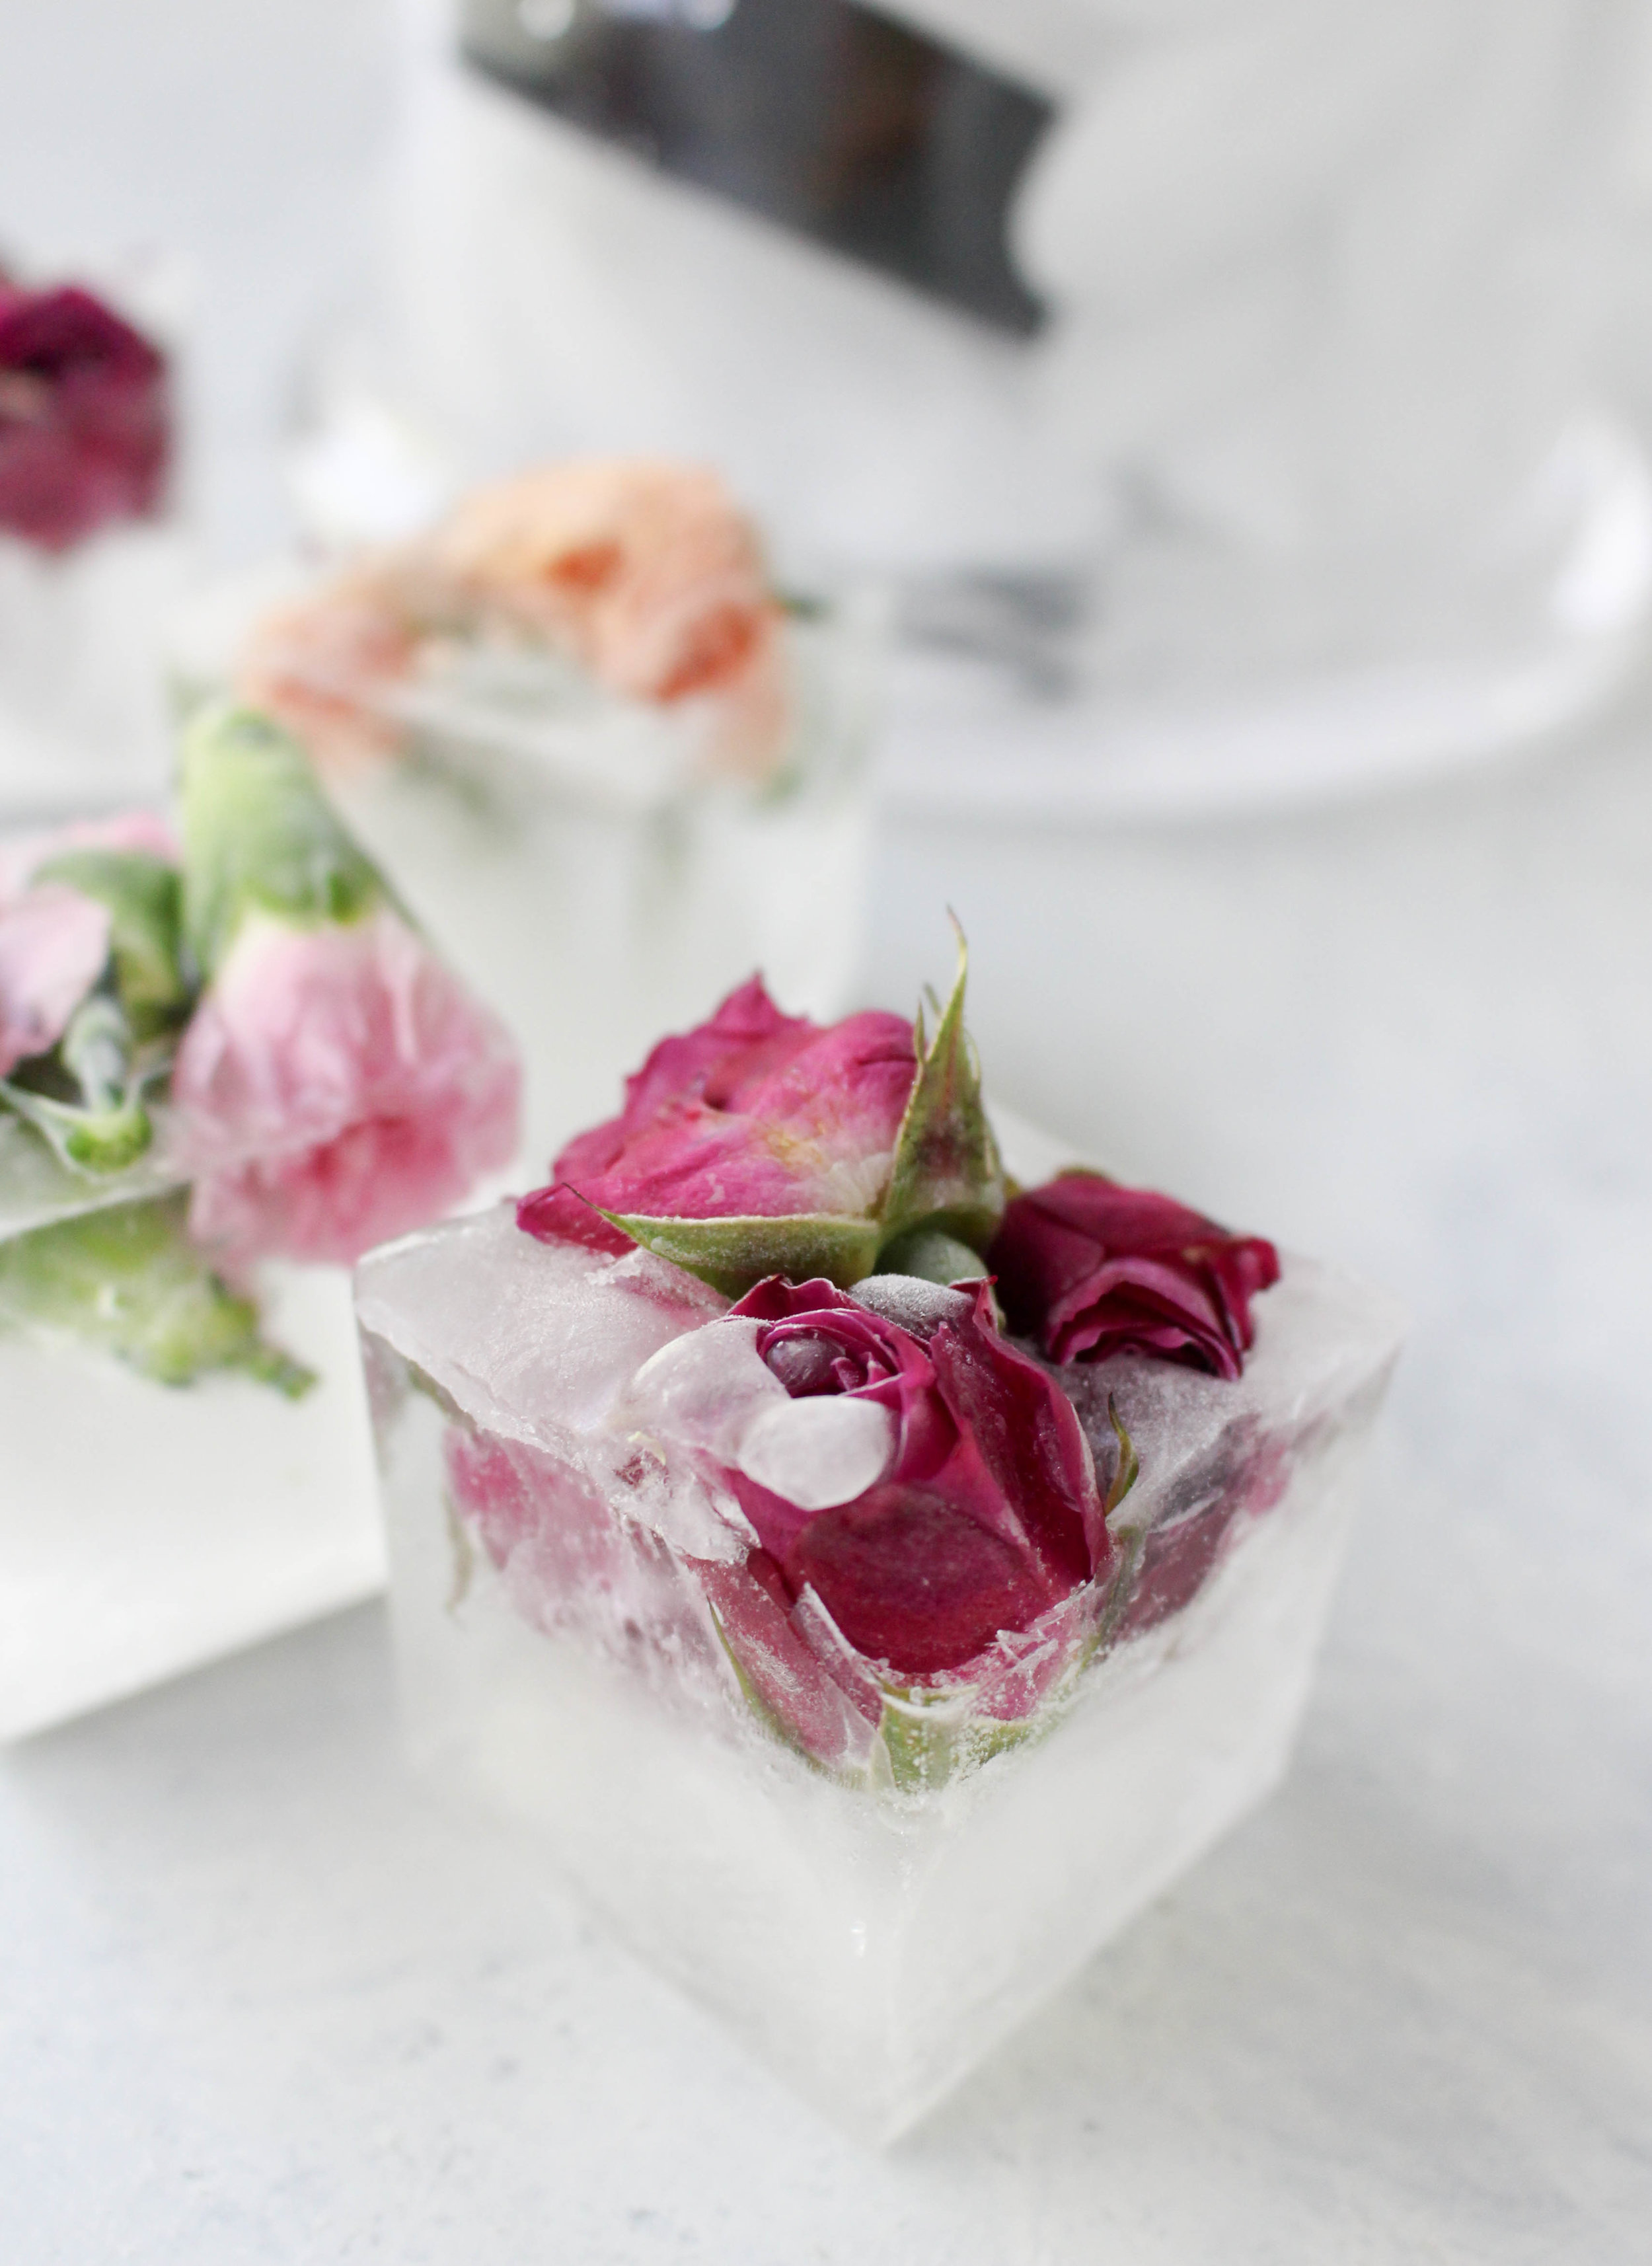 How To Make Floral Ice Cubes Easy Elegant Entertaining